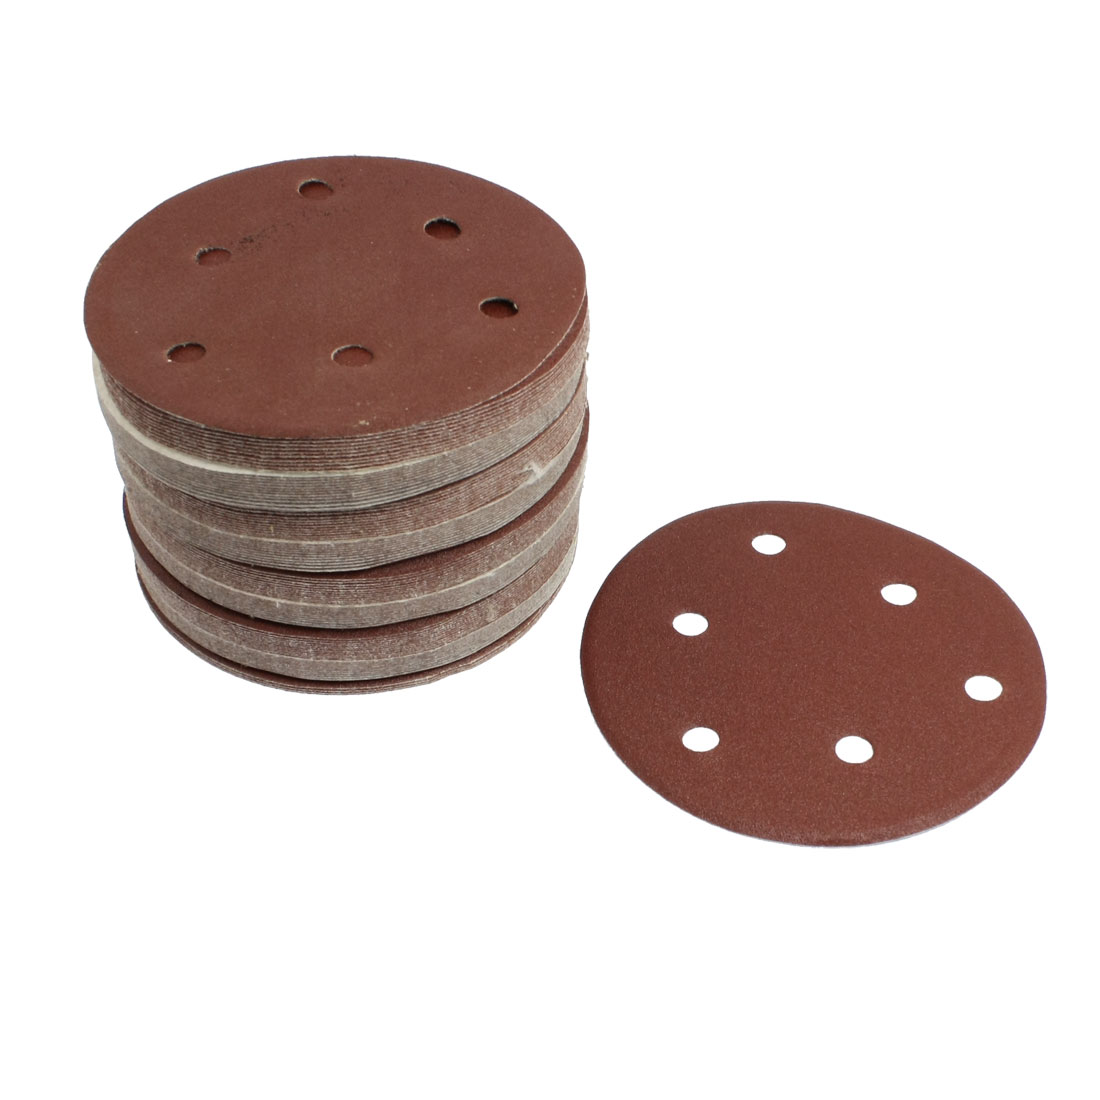 "100 Pcs 80 Grit 6 Hole 5"" Diameter Sandpaper Hook Loop Sanding Discs"